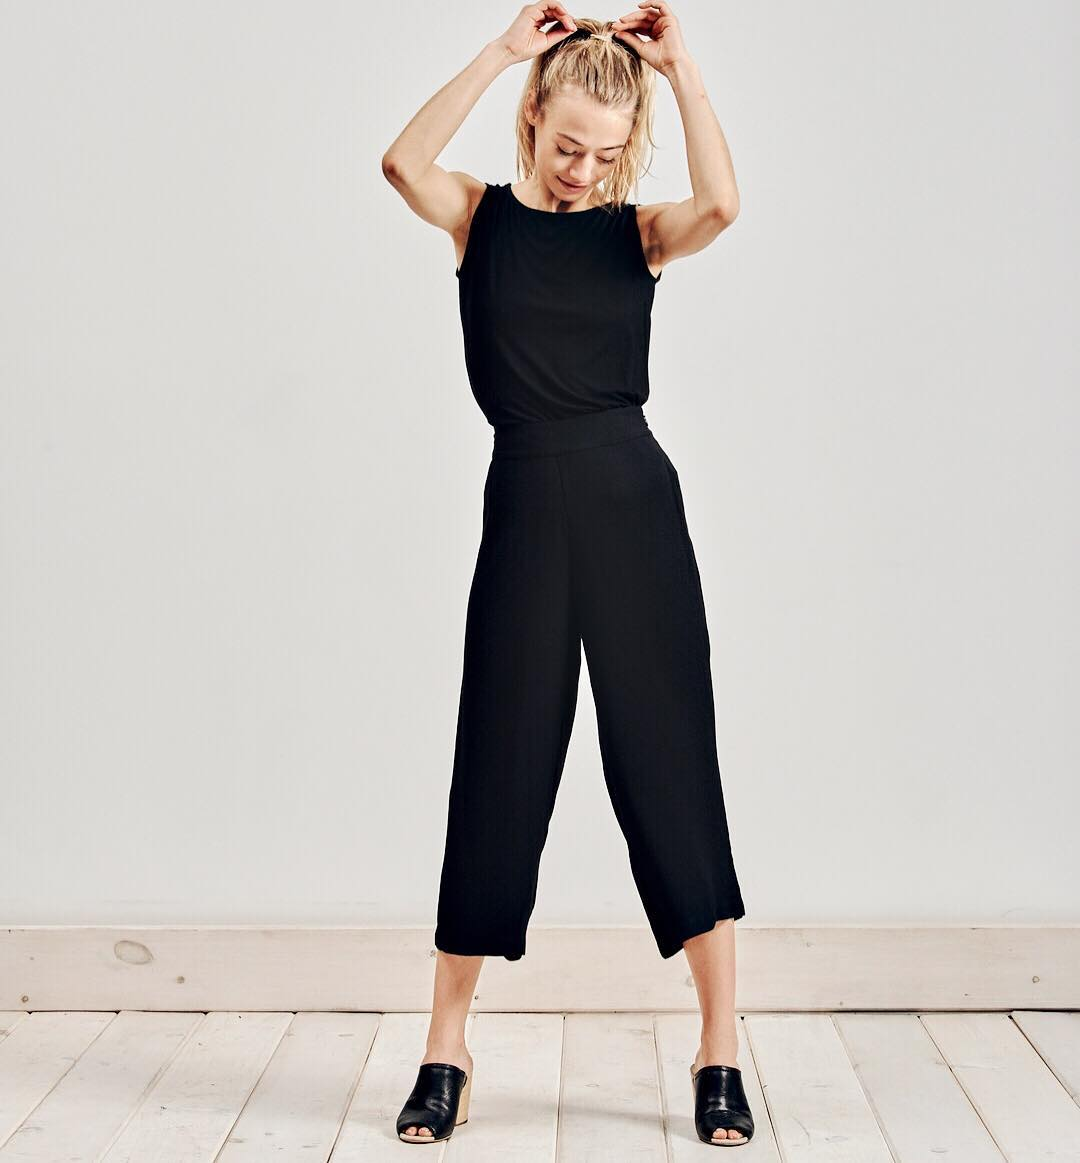 Culottes Pants For Summer